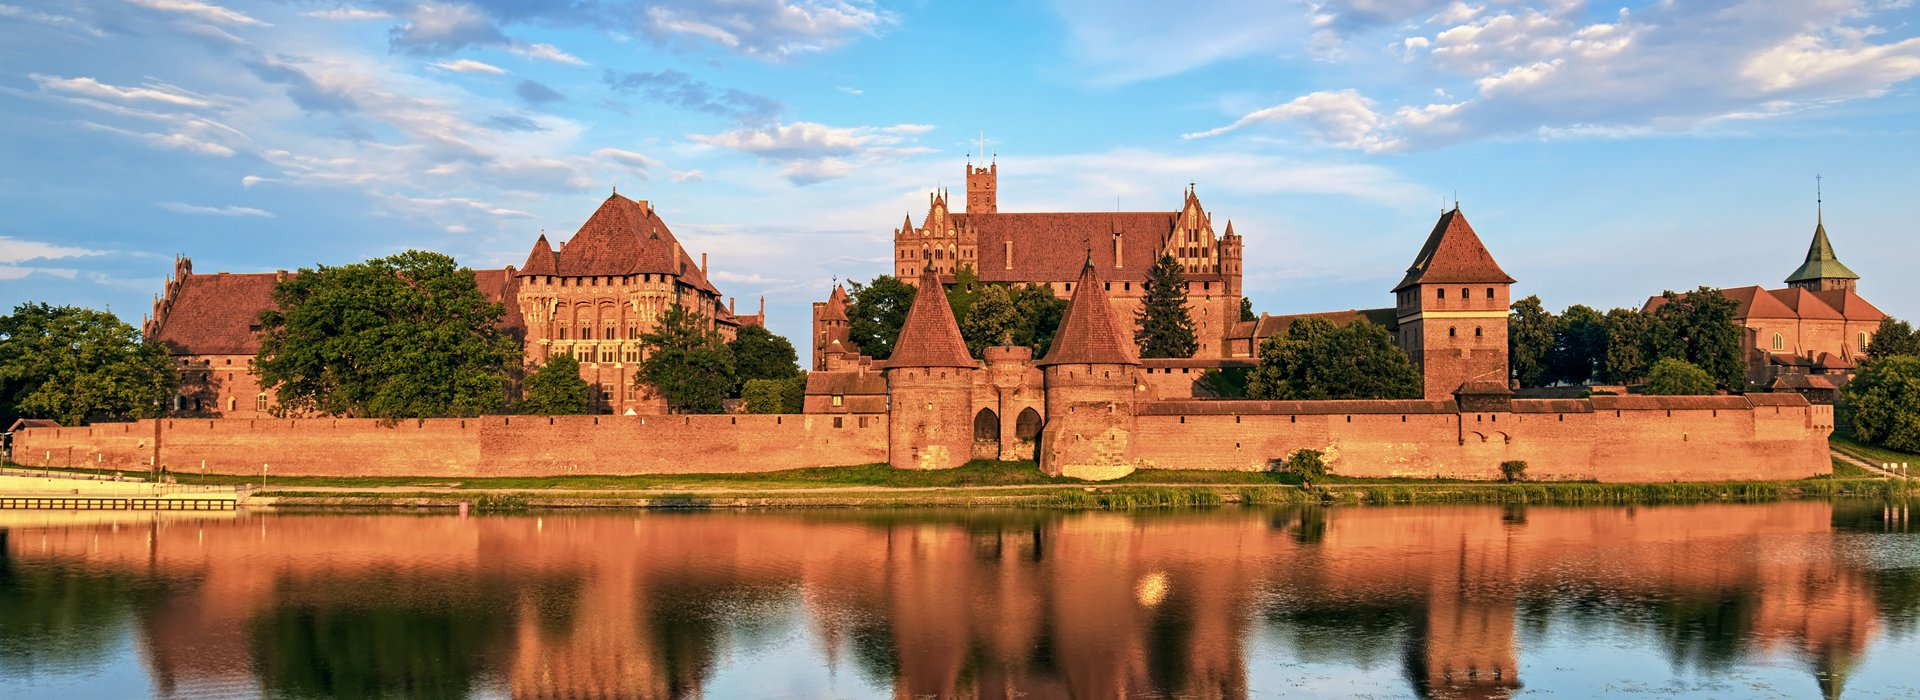 Defence wall of Malbork